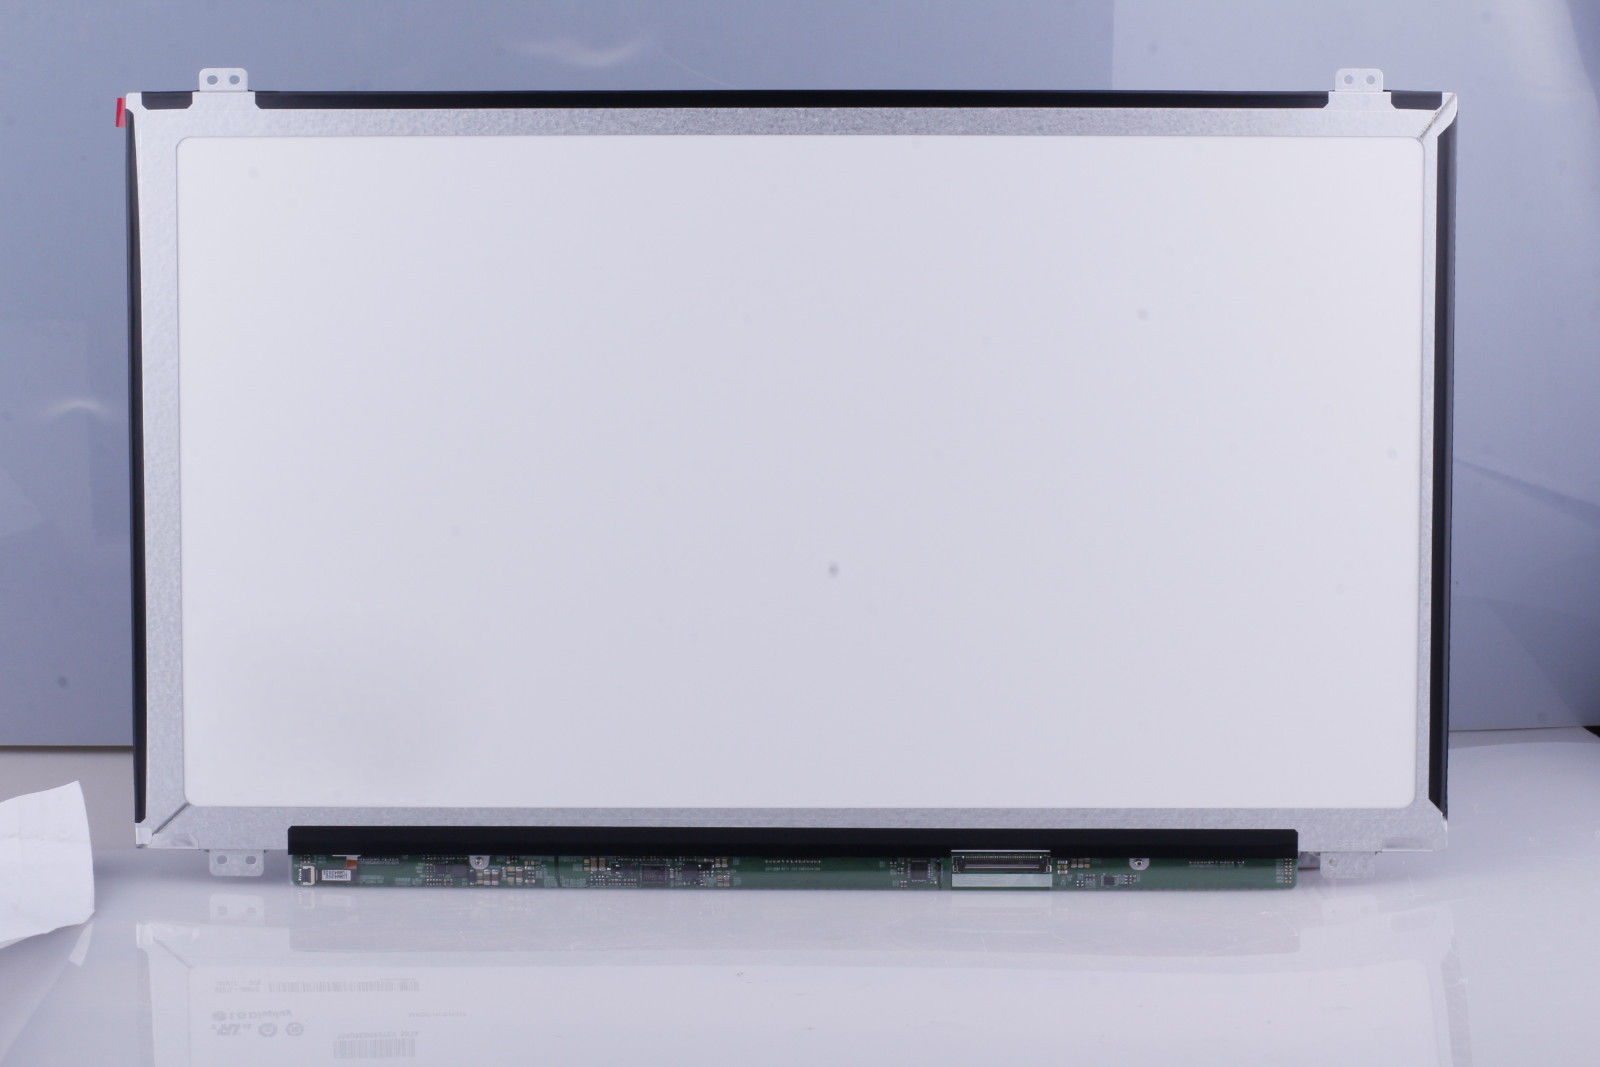 QuYing Laptop LCD Screen Compatible Model B156XW04 V.5 LP156WH3 B156XW03 N156BGE-L41 N156B6-L0D LTN156AT20 LTN156AT30 LP156WH3 lp116wh2 m116nwr1 ltn116at02 n116bge lb1 b116xw03 v 0 n116bge l41 n116bge lb1 ltn116at04 claa116wa03a b116xw01slim lcd